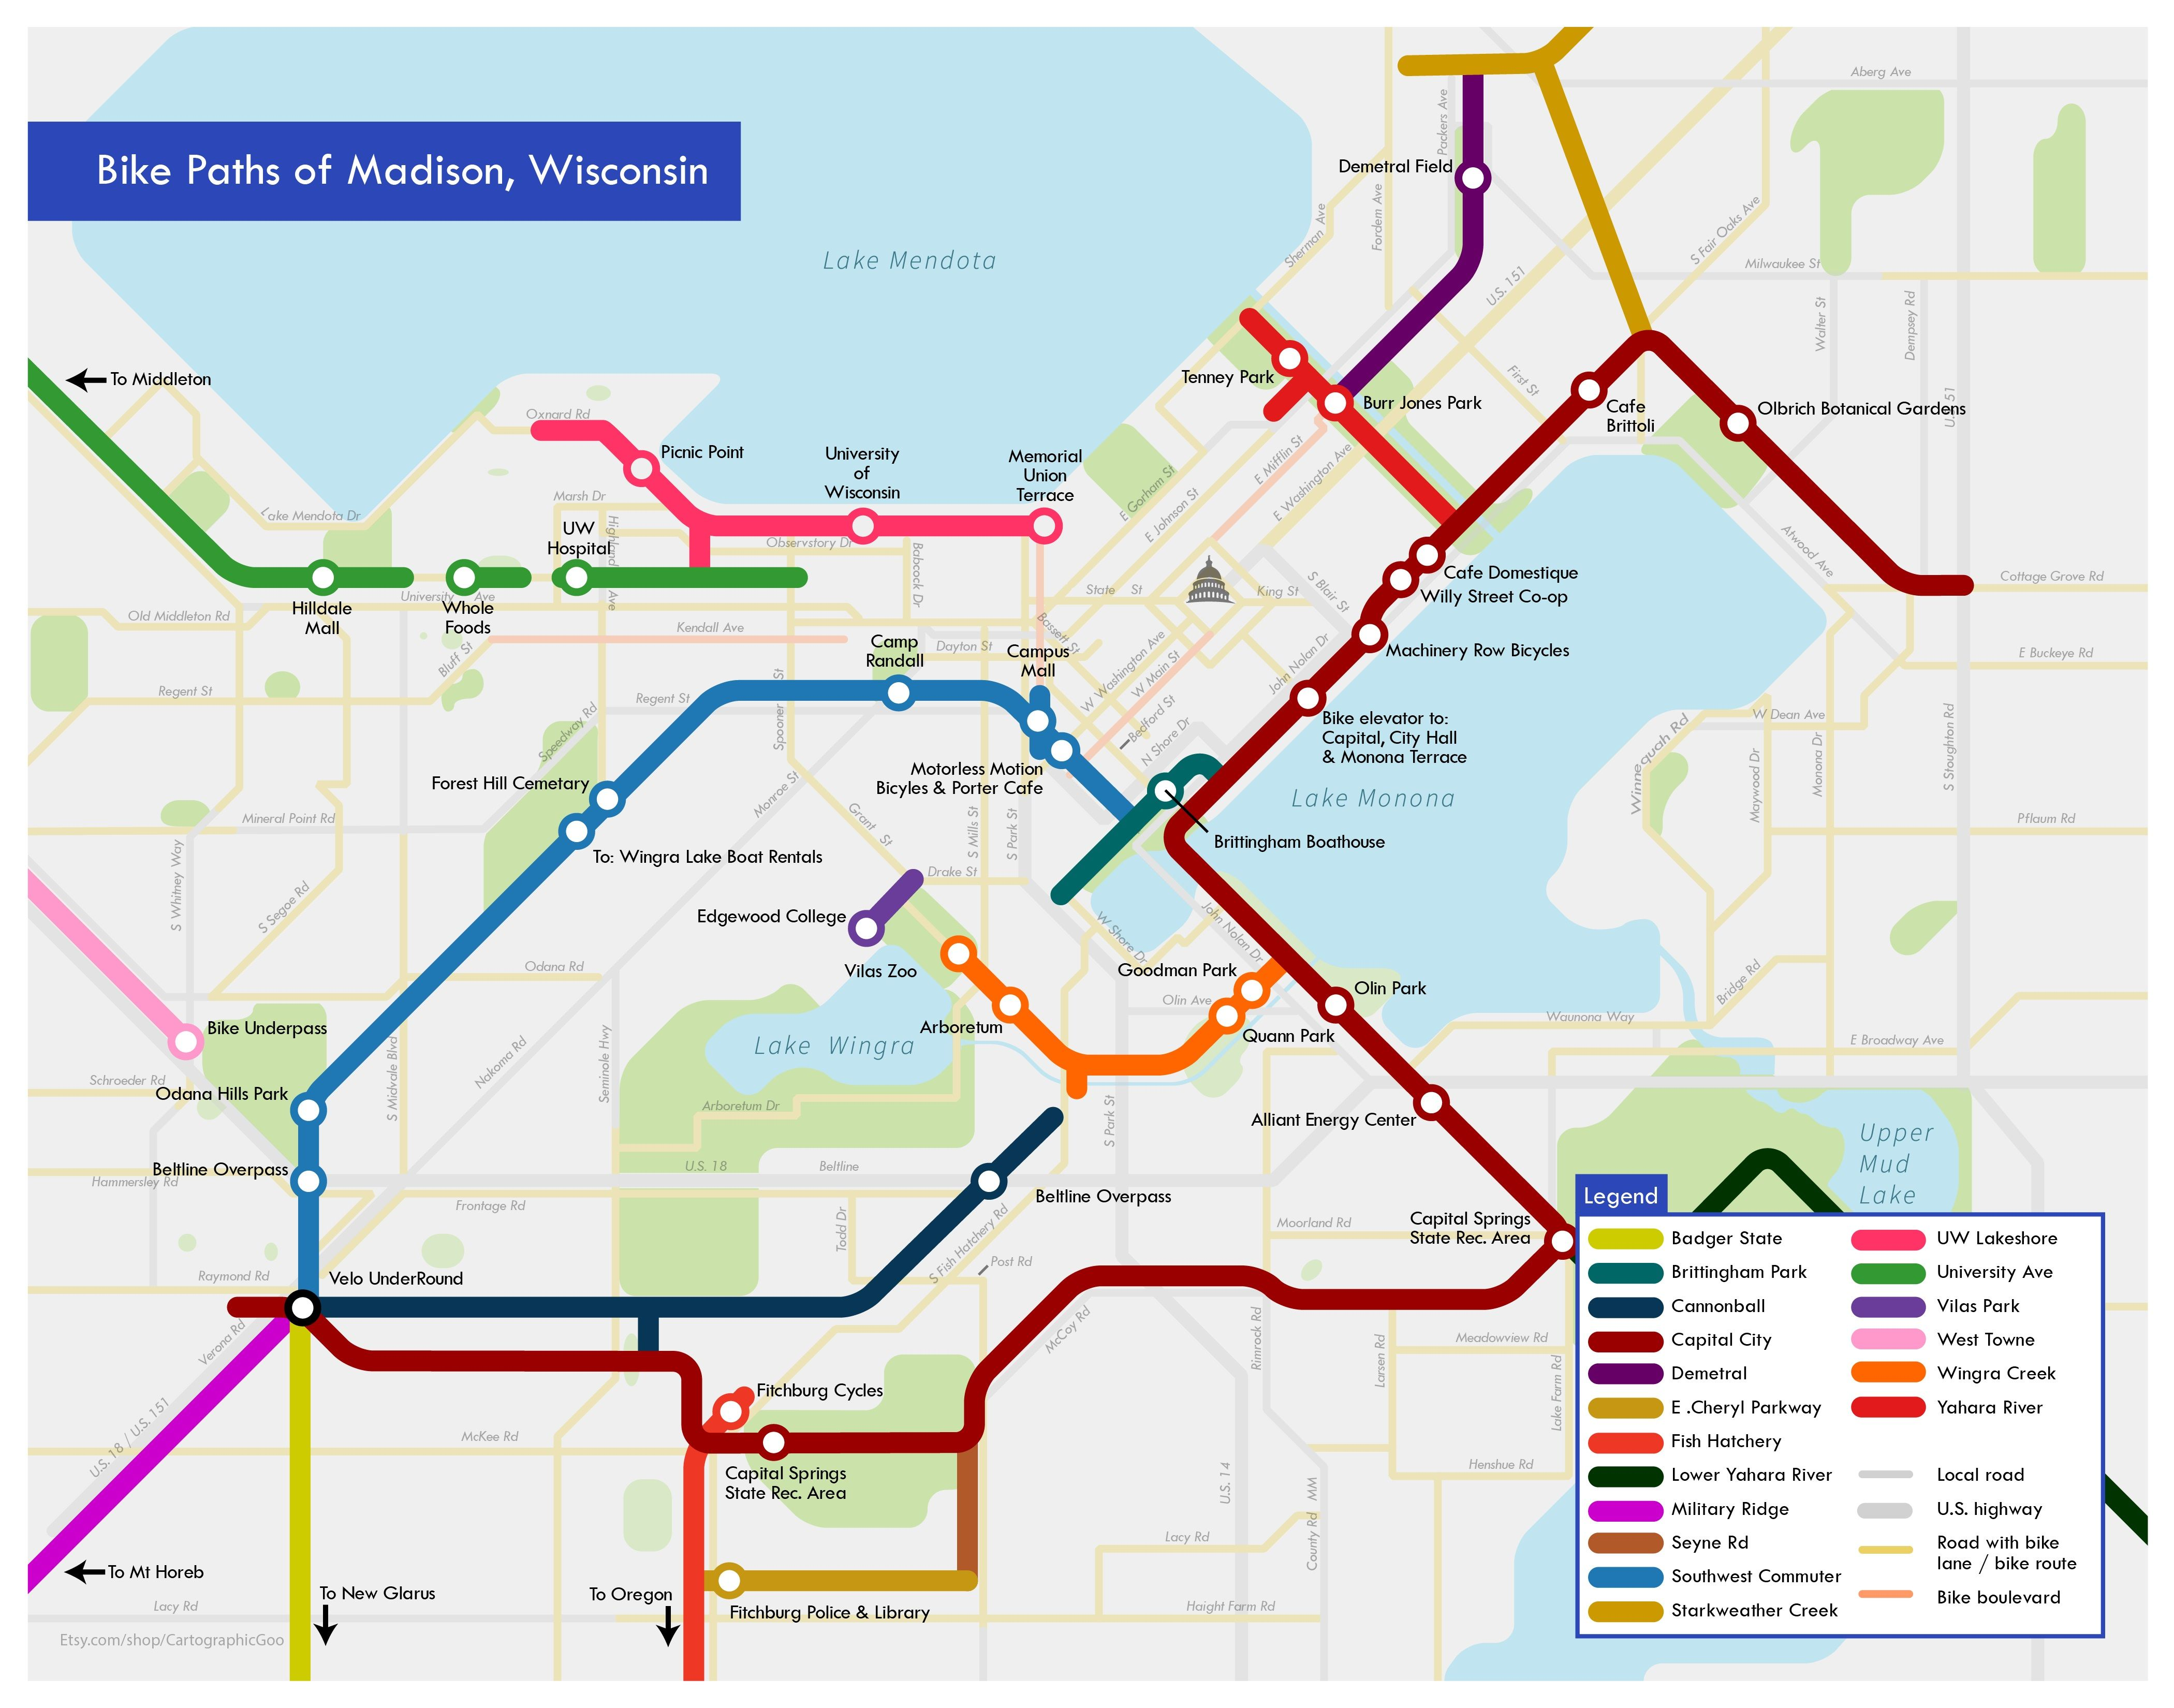 Here S A Map Of All The Bike Friendly Roads And Paths In The Fine